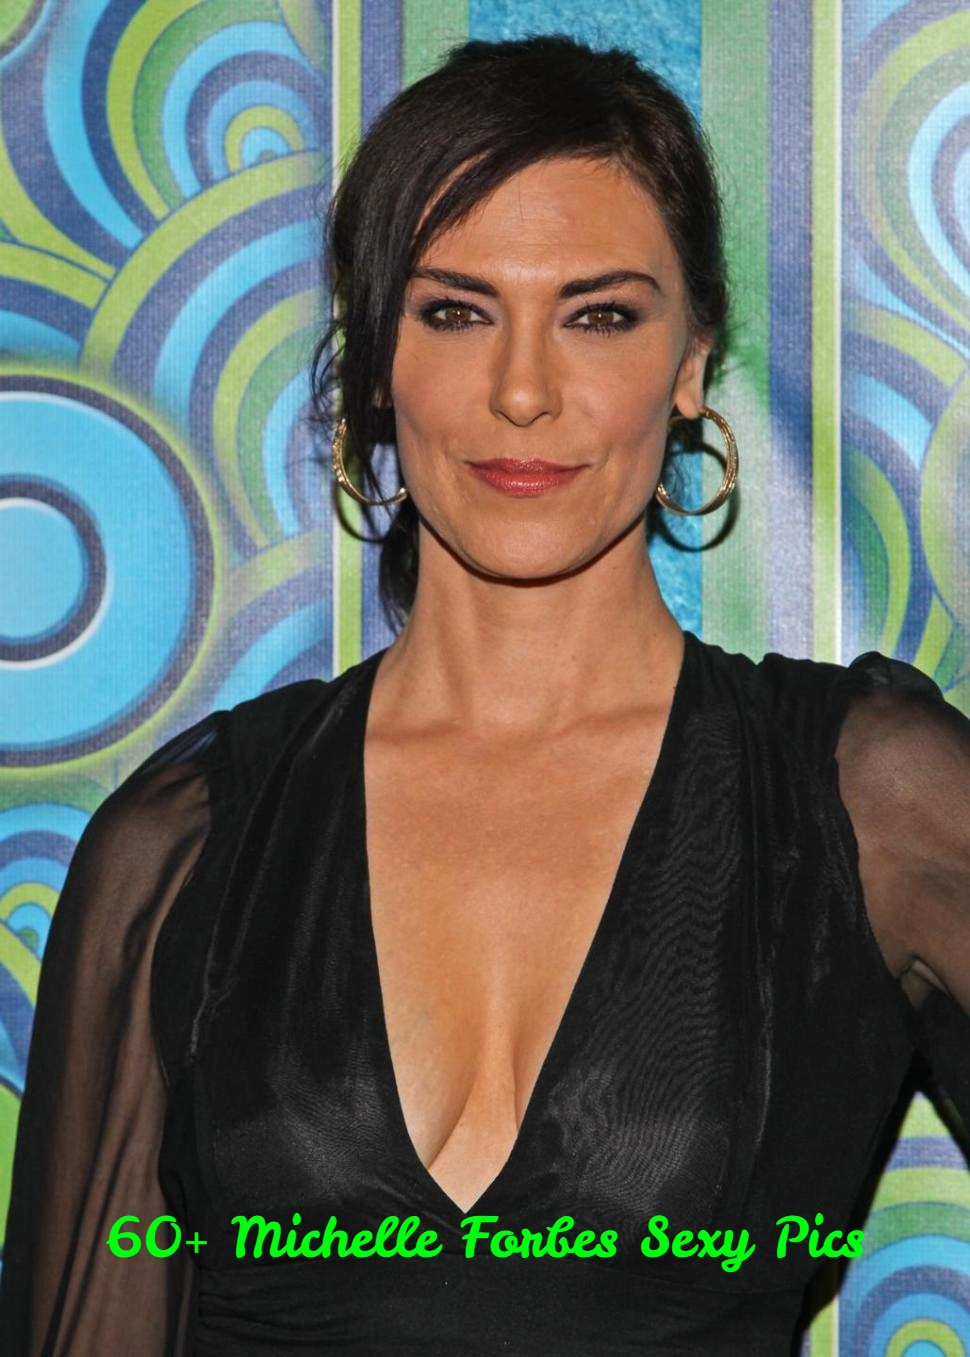 Michelle Forbes hot pics